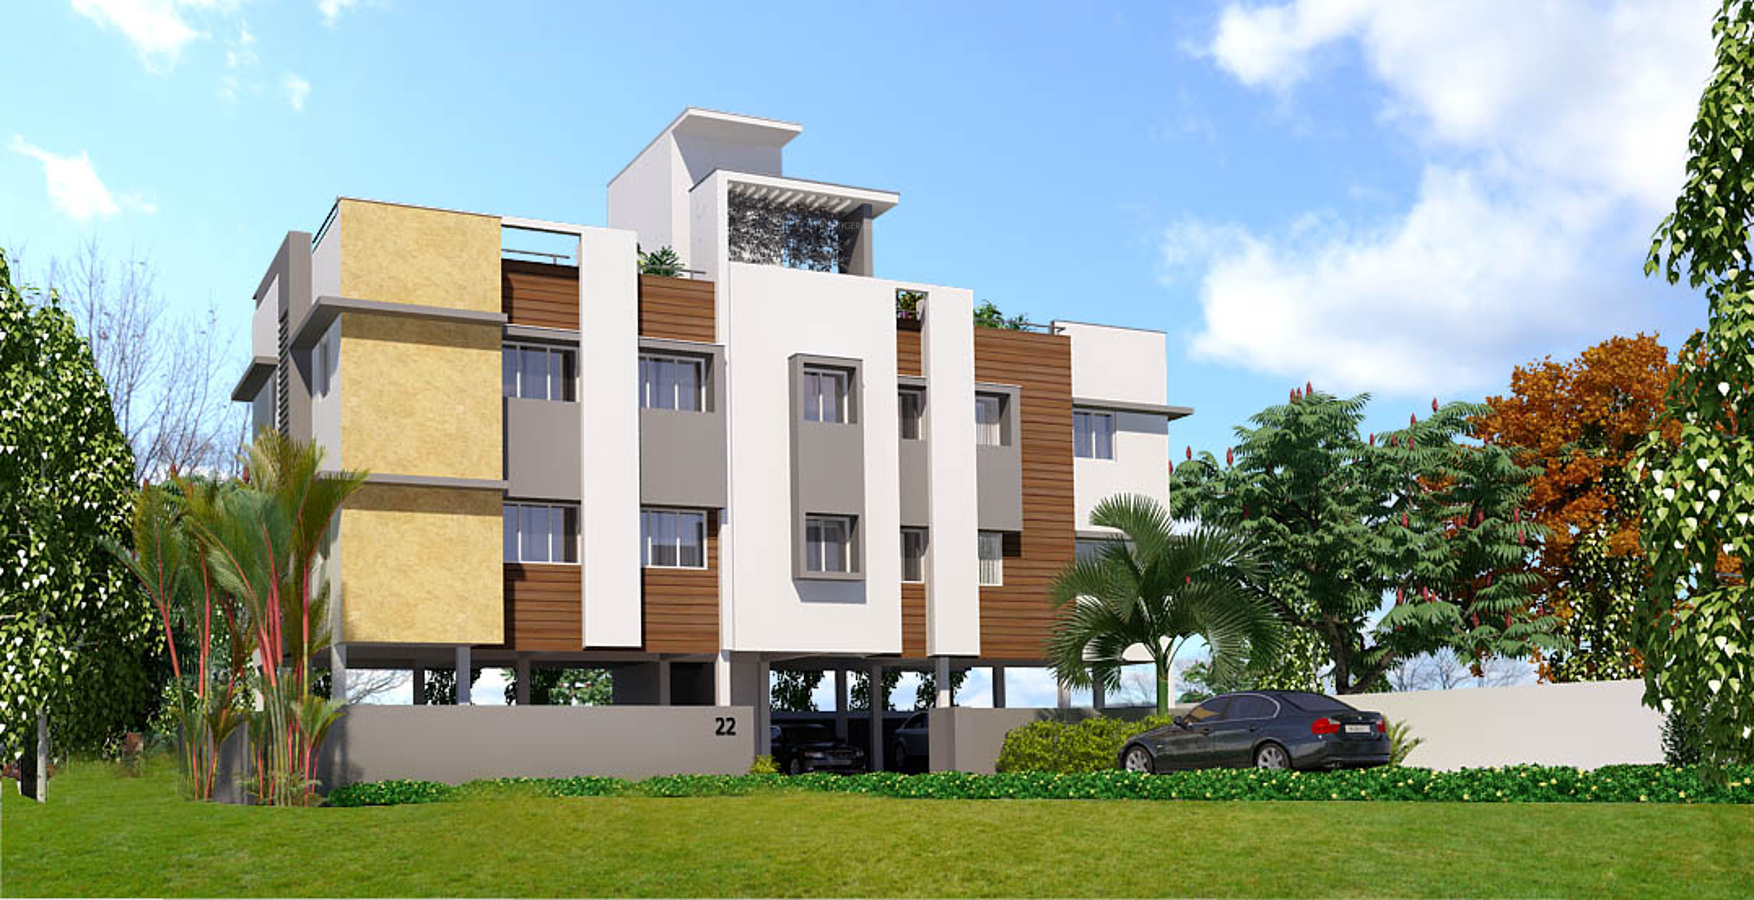 671 Sq Ft 2 Bhk 2t Apartment For Sale In Ms Foundations